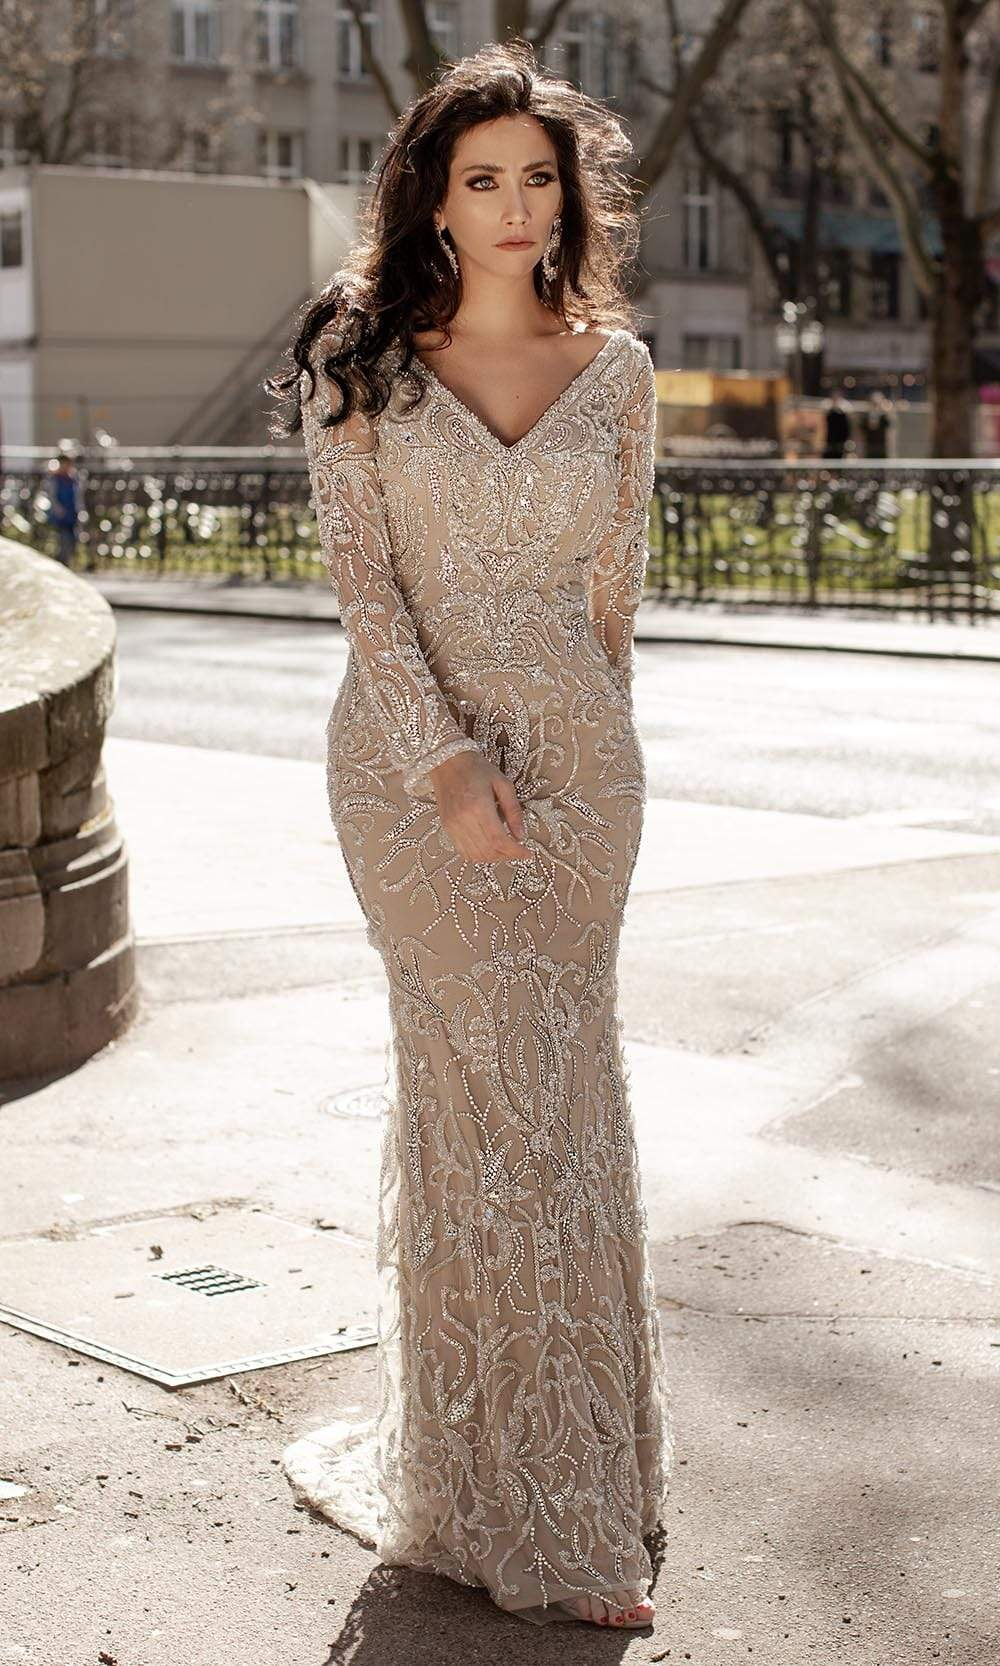 Chic and Holland - HF1552 Bedazzled Long Sleeve Sheath Dress from Chic and Holland